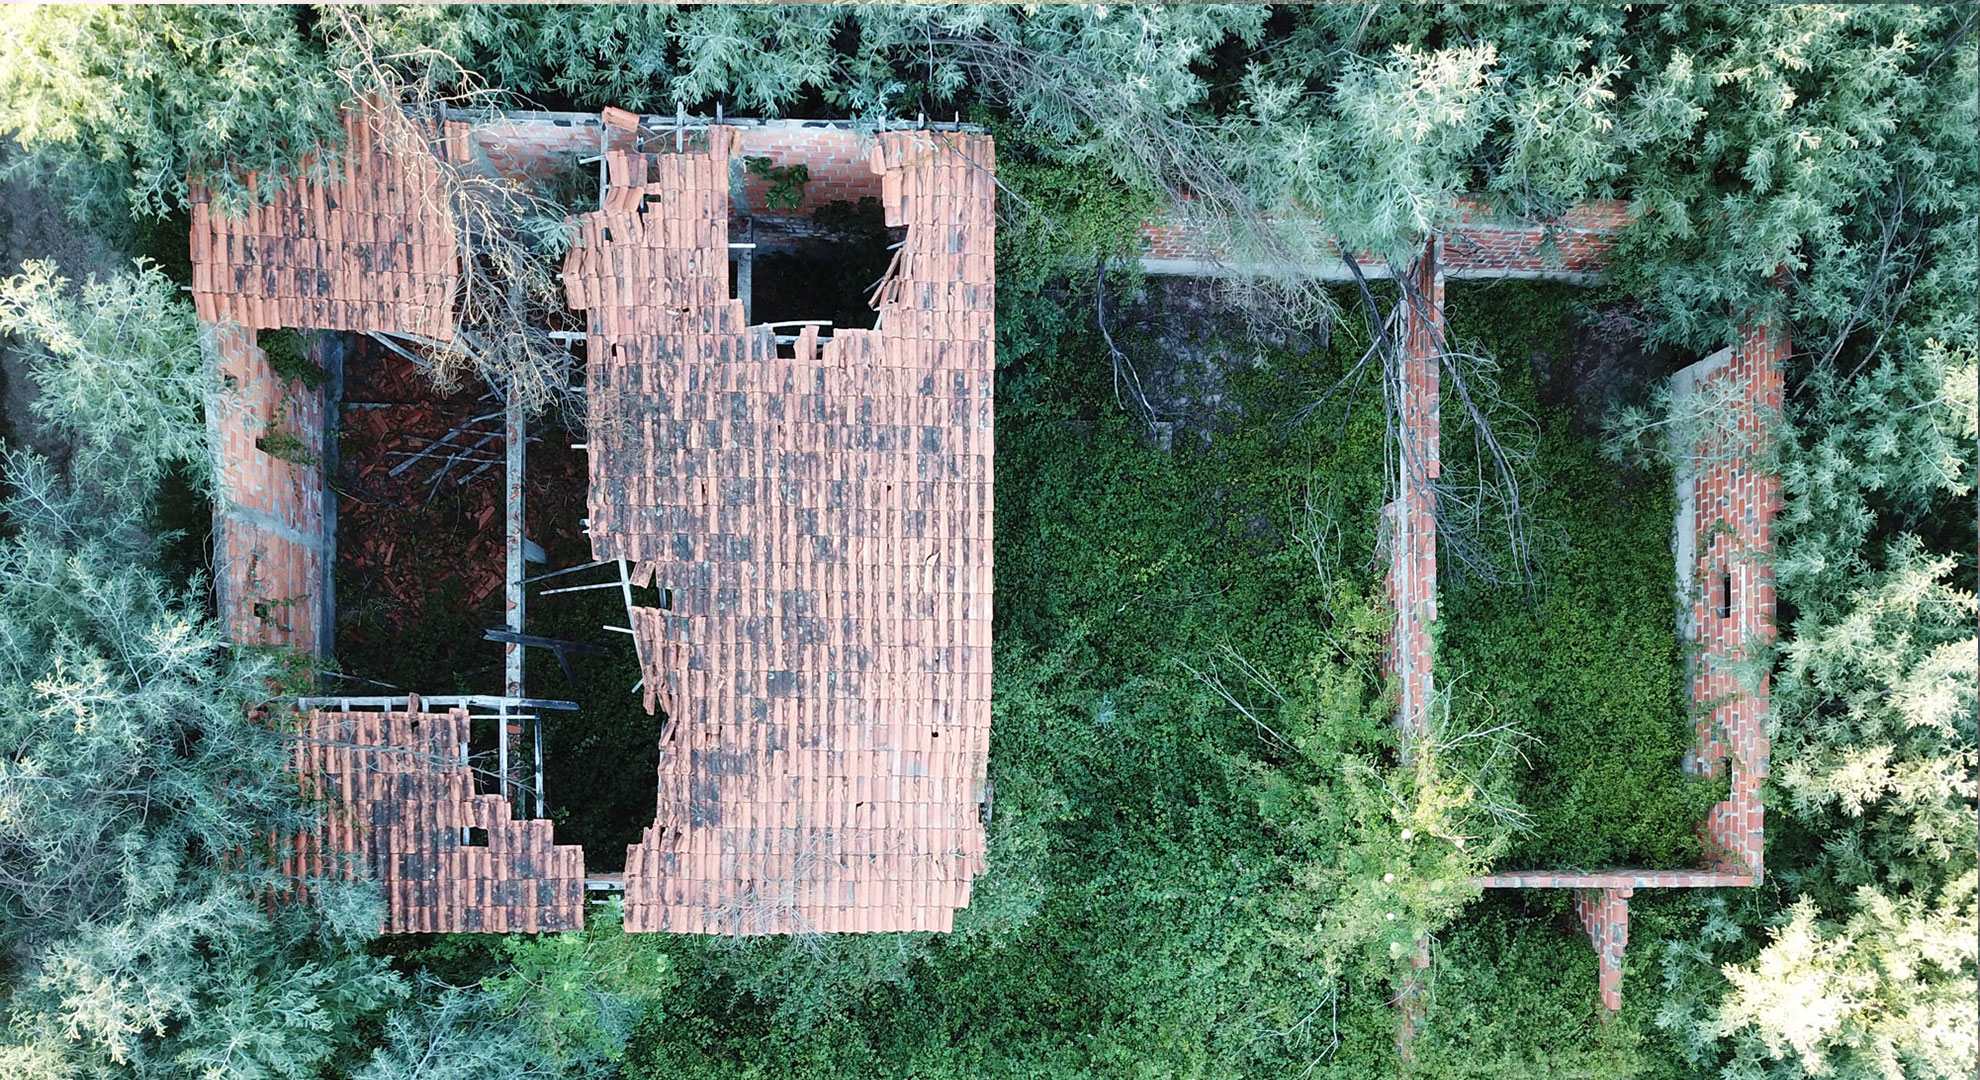 Aerial view of one of the ruins in Project Kamp